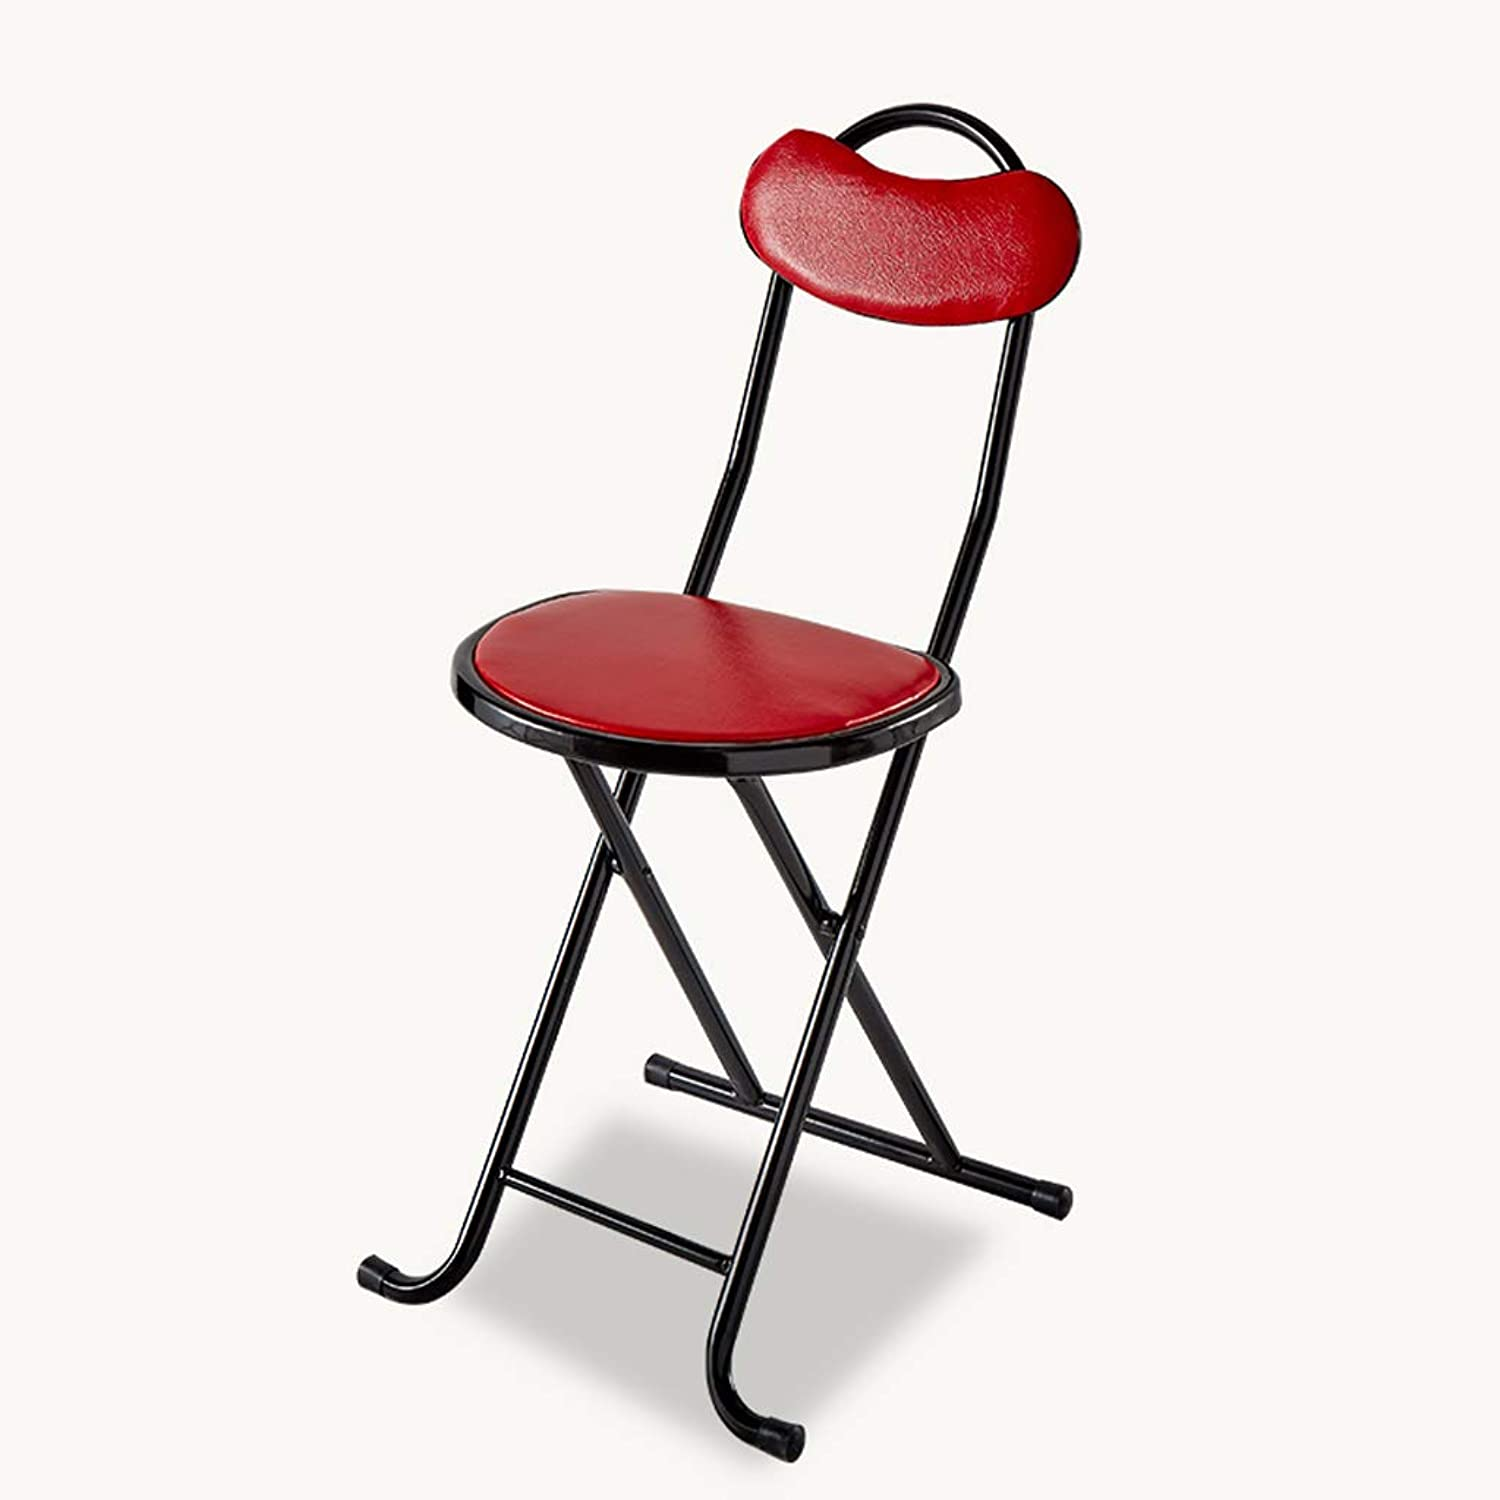 CQ Simple Folding Chair Home Portable Dining Chair Small Bench Dormitory Student Chair Folding Stool Round Stool (color   Red)